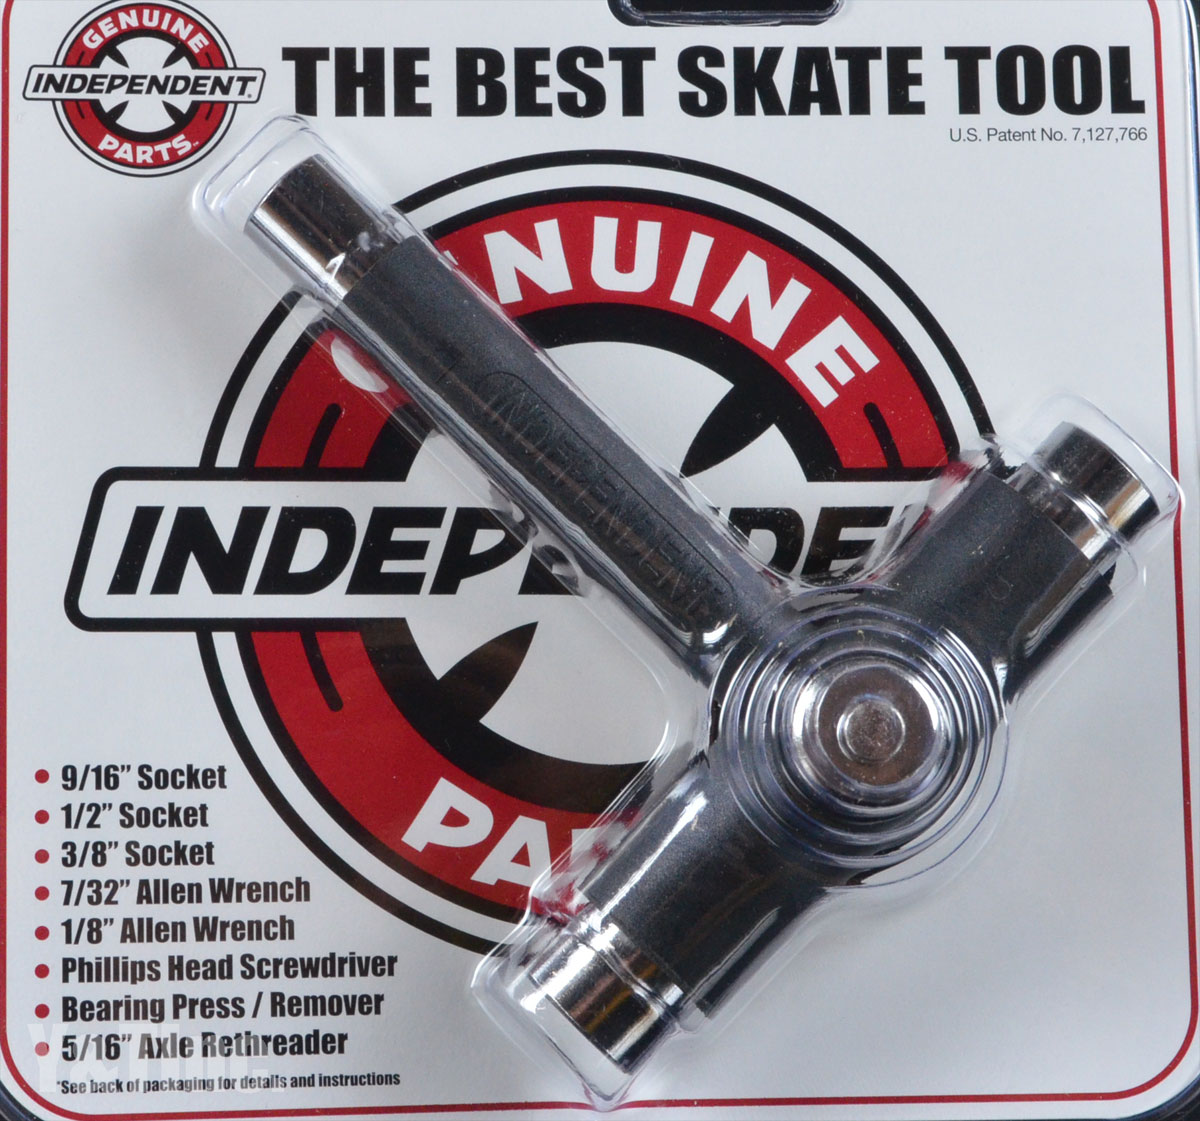 INDEPENDENT BEST SKATE TOOL BLACK 2